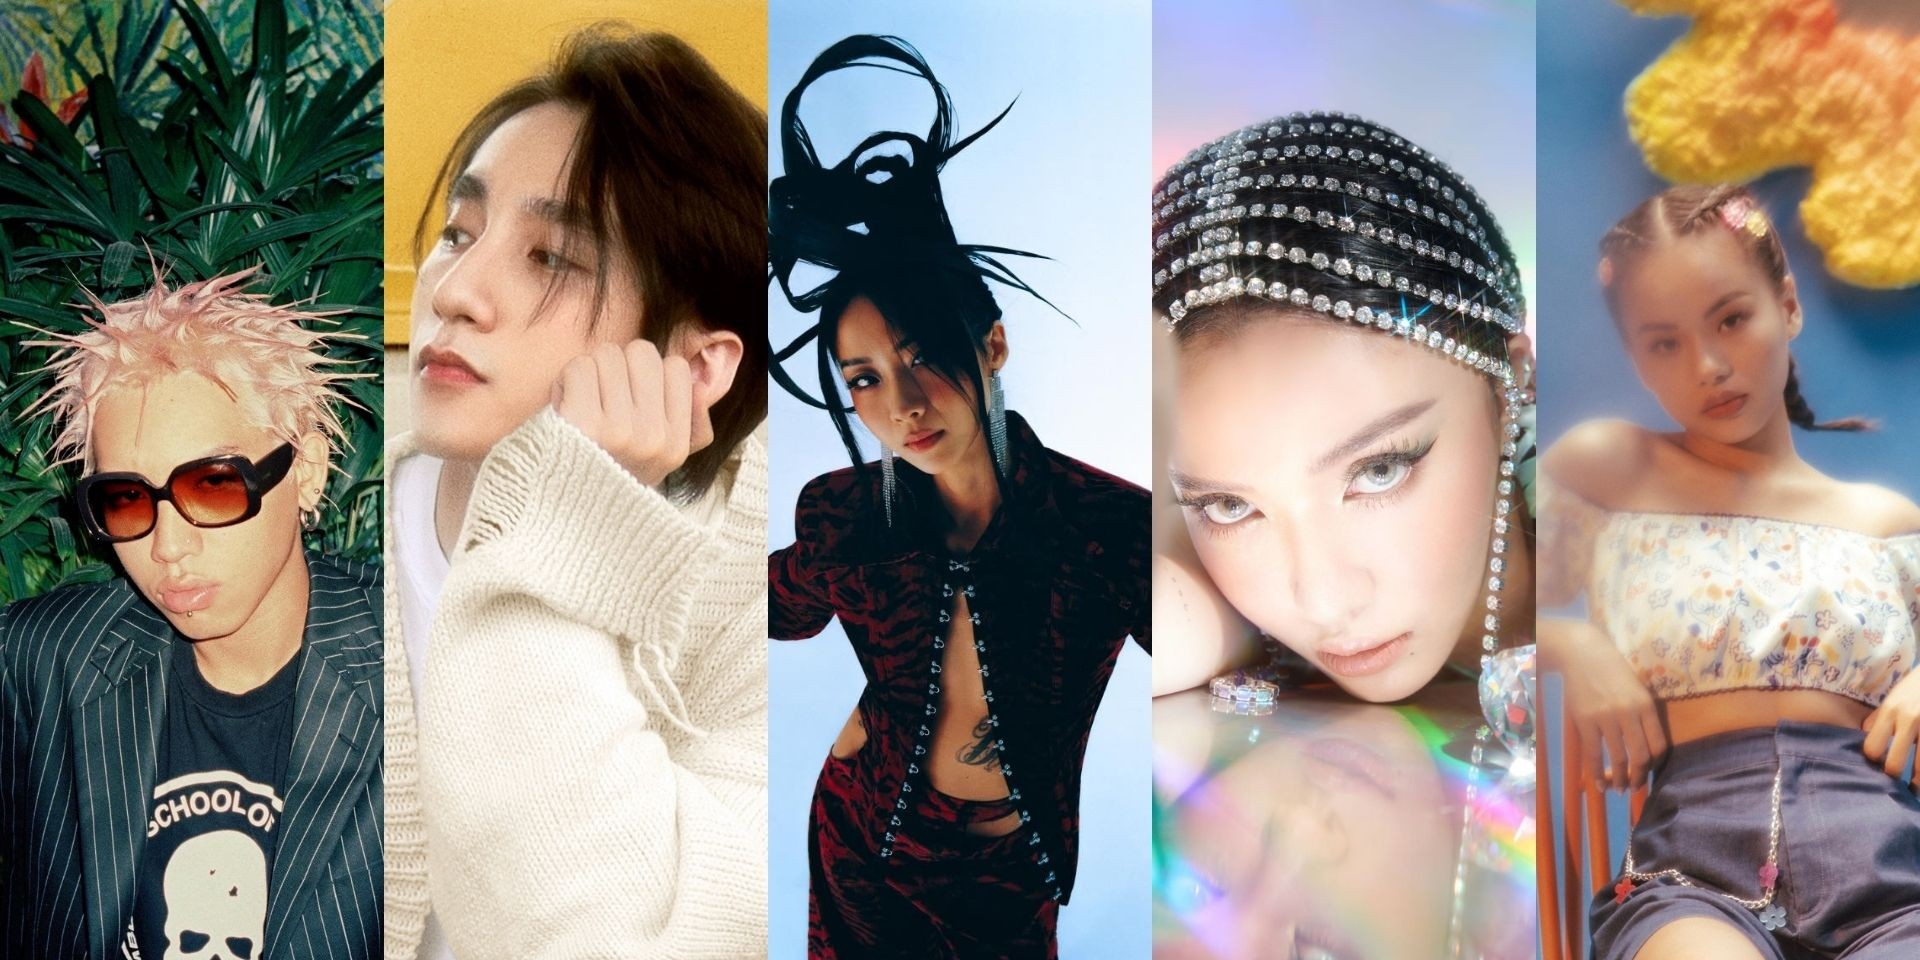 Bandwagon's guide to the Vietnamese music scene: 9 artists you need to know